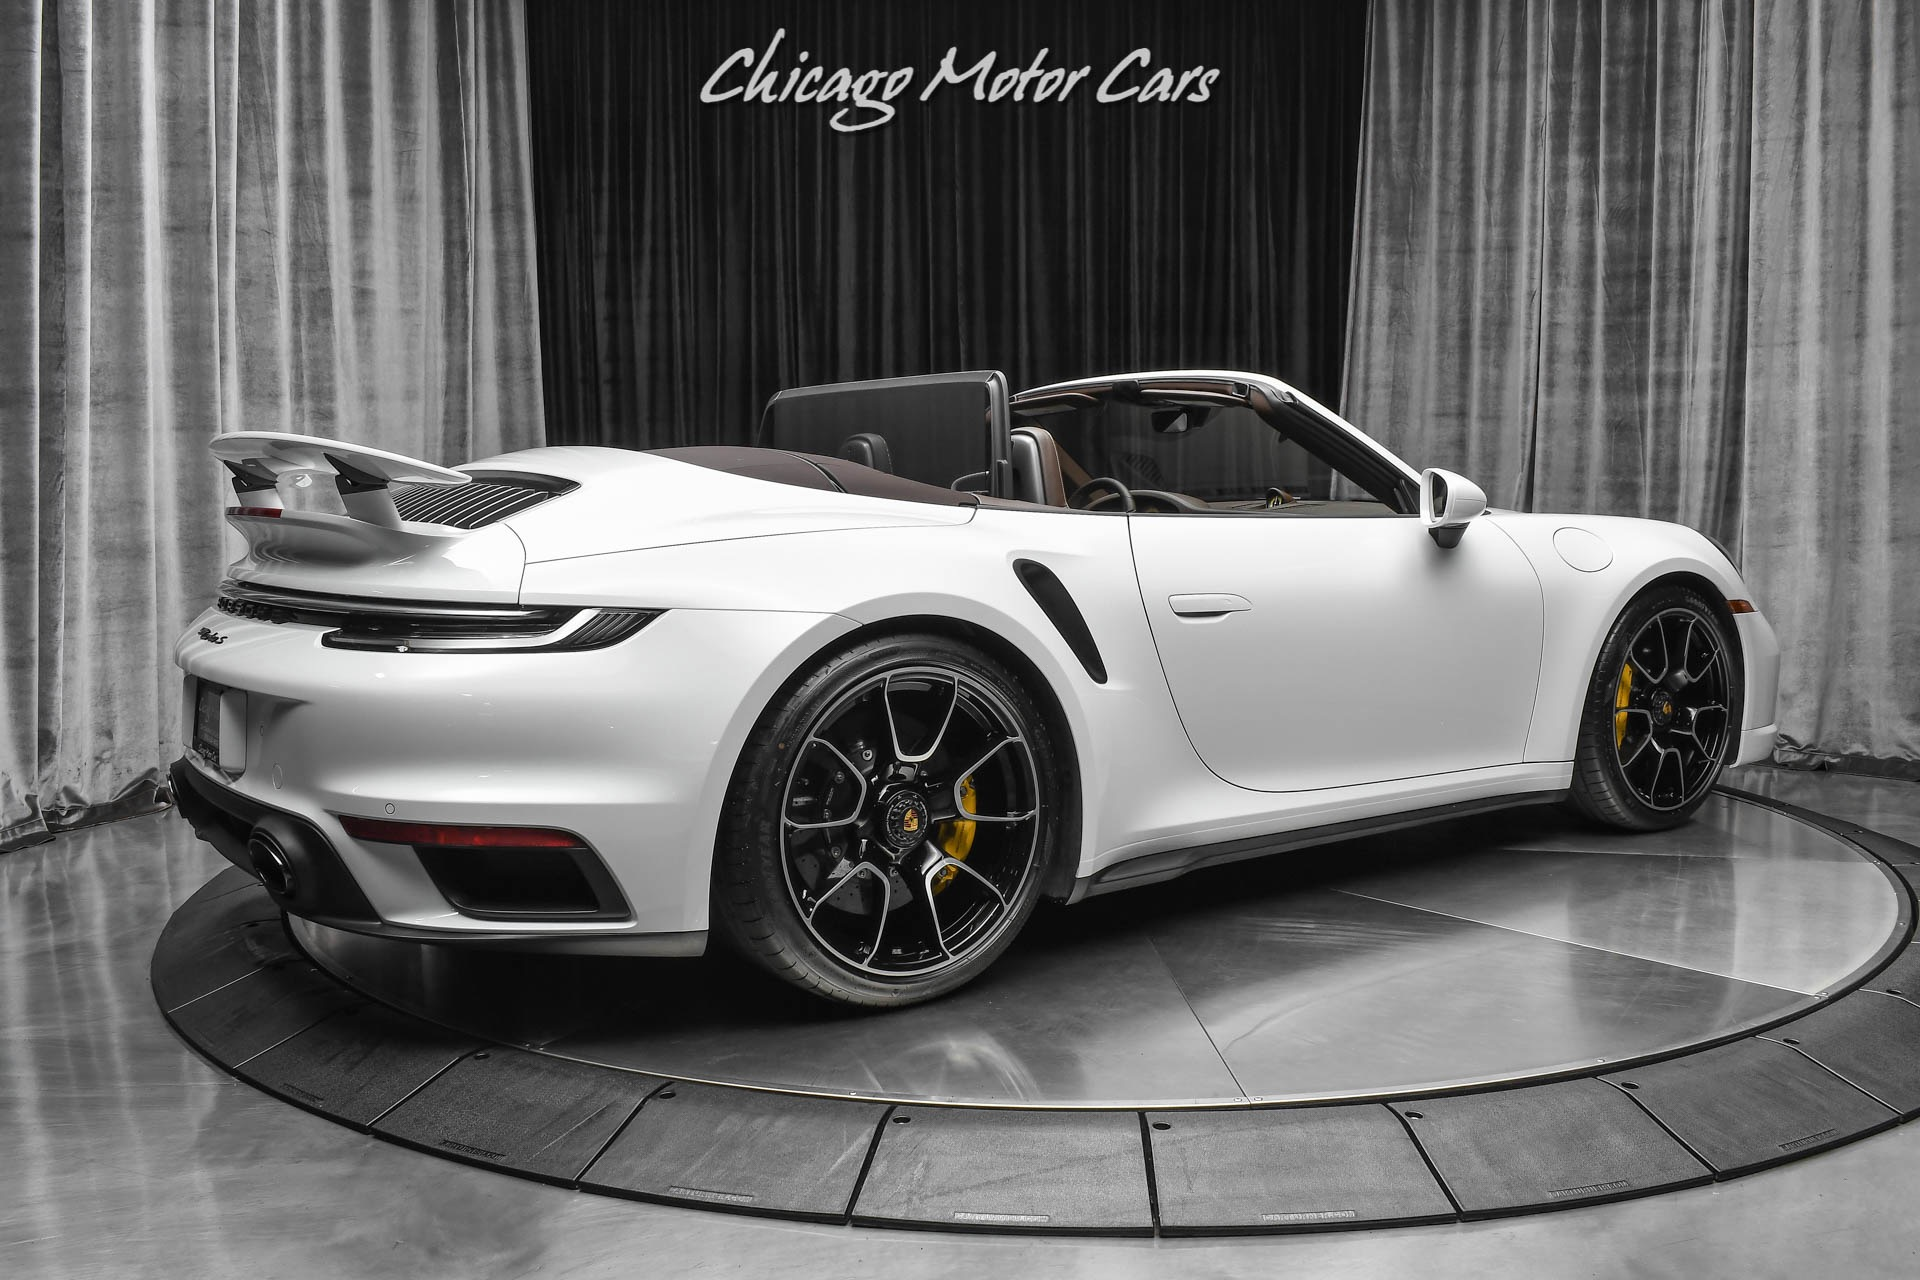 Used-2021-Porsche-911-Turbo-S-Front-Axle-Lift-Sport-Exhaust-Only-990-Miles-Full-PPF